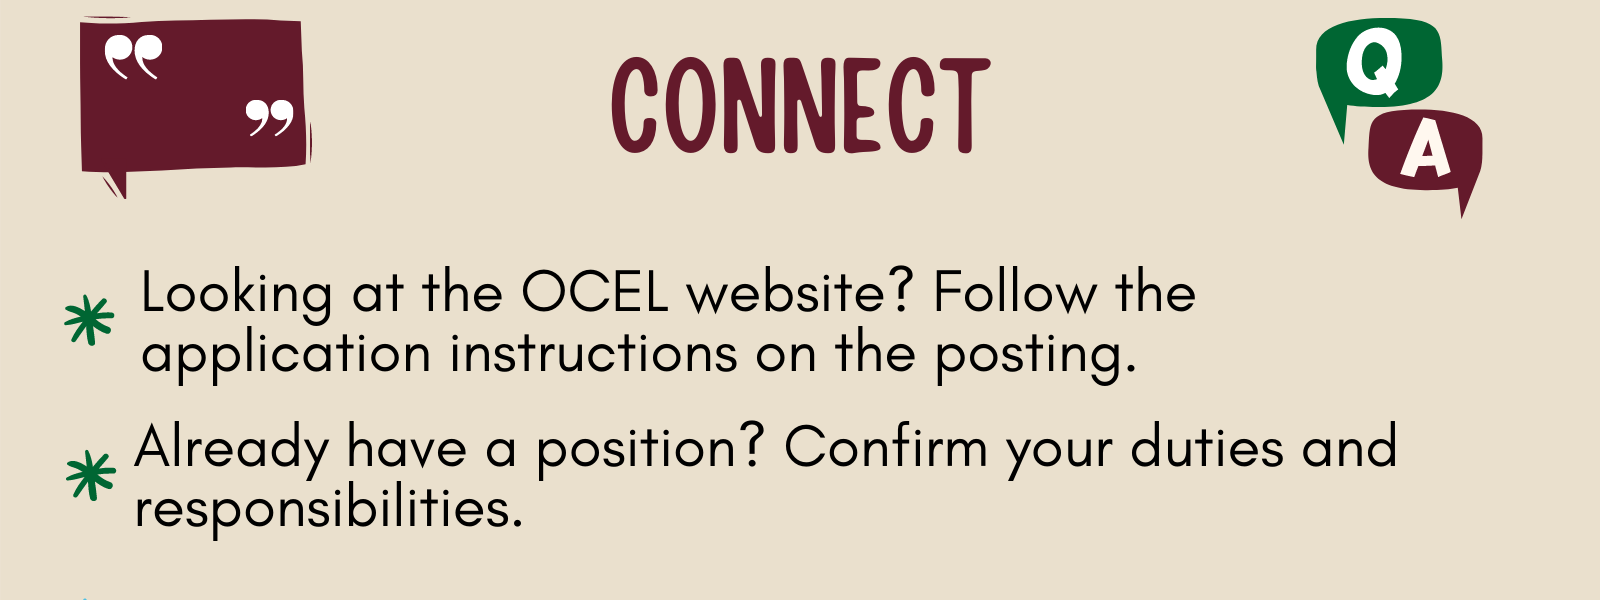 Connect with the organization that you are interested in working with